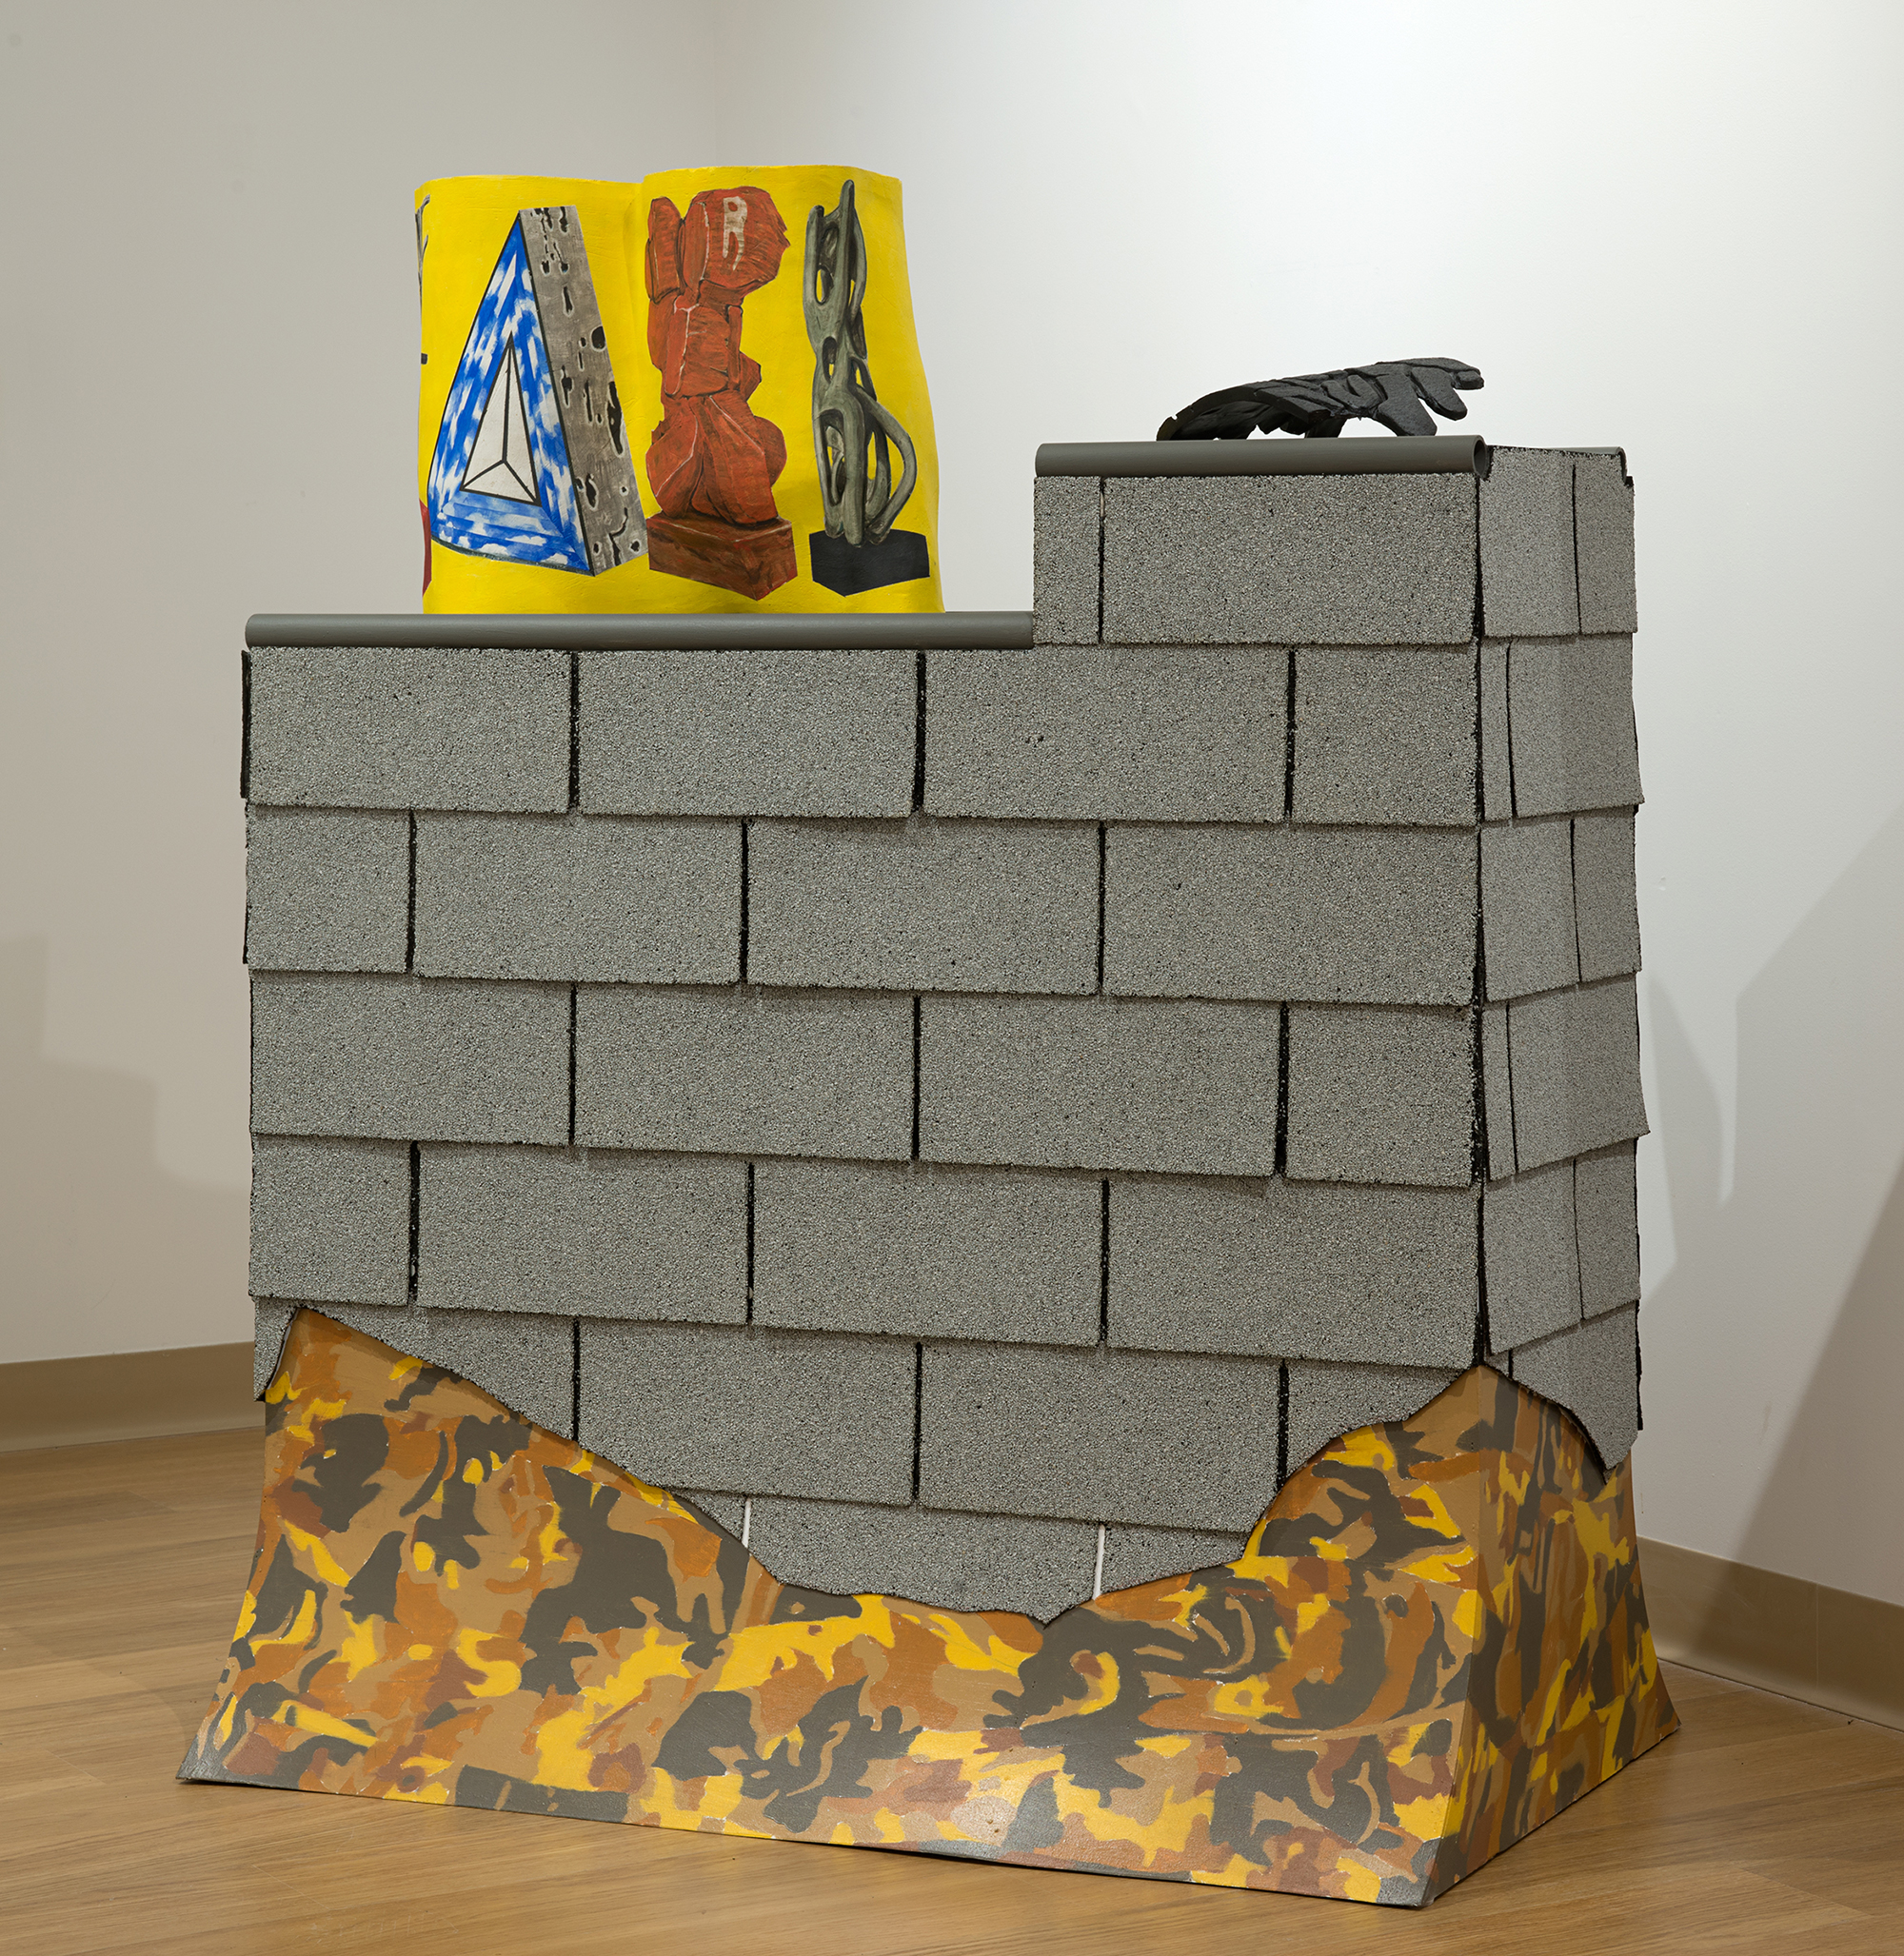 MARS installation, 2015  stoneware, roofing shingles, wood, oil paint, and pvc pipe  24 x 48 x 48 inches